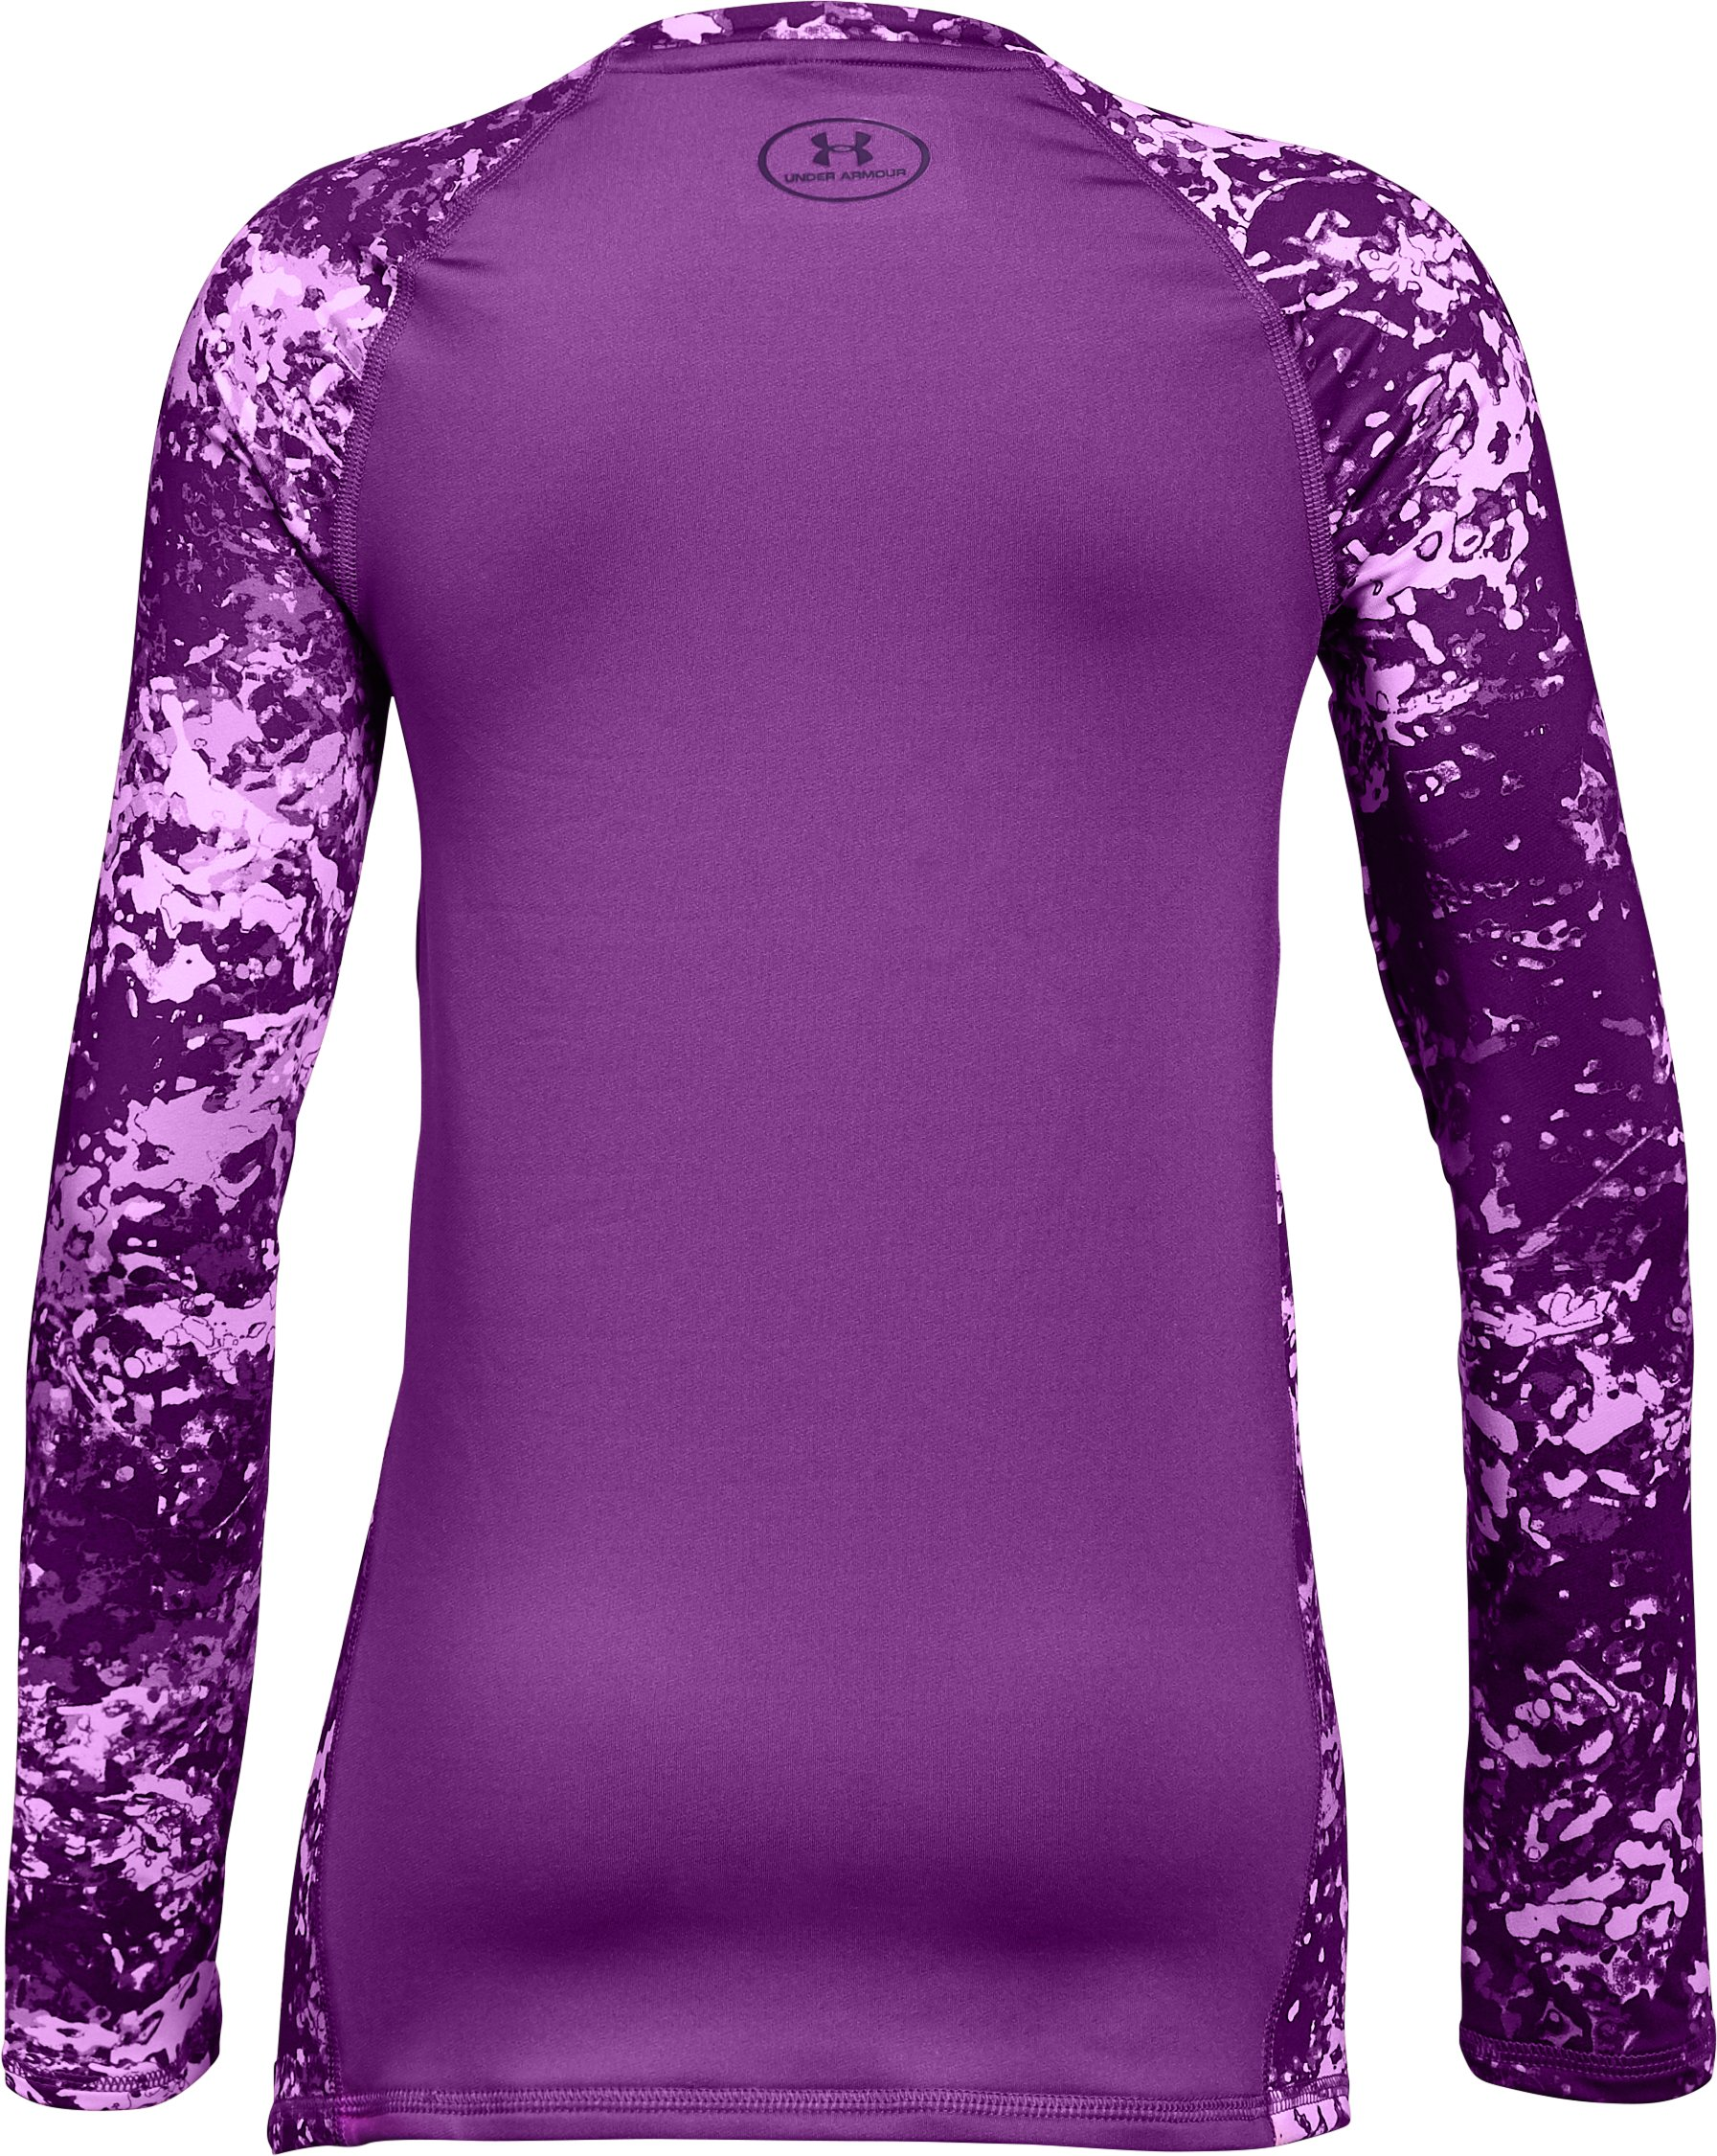 Girls' ColdGear® Crew Neck, PURPLE RAVE, undefined